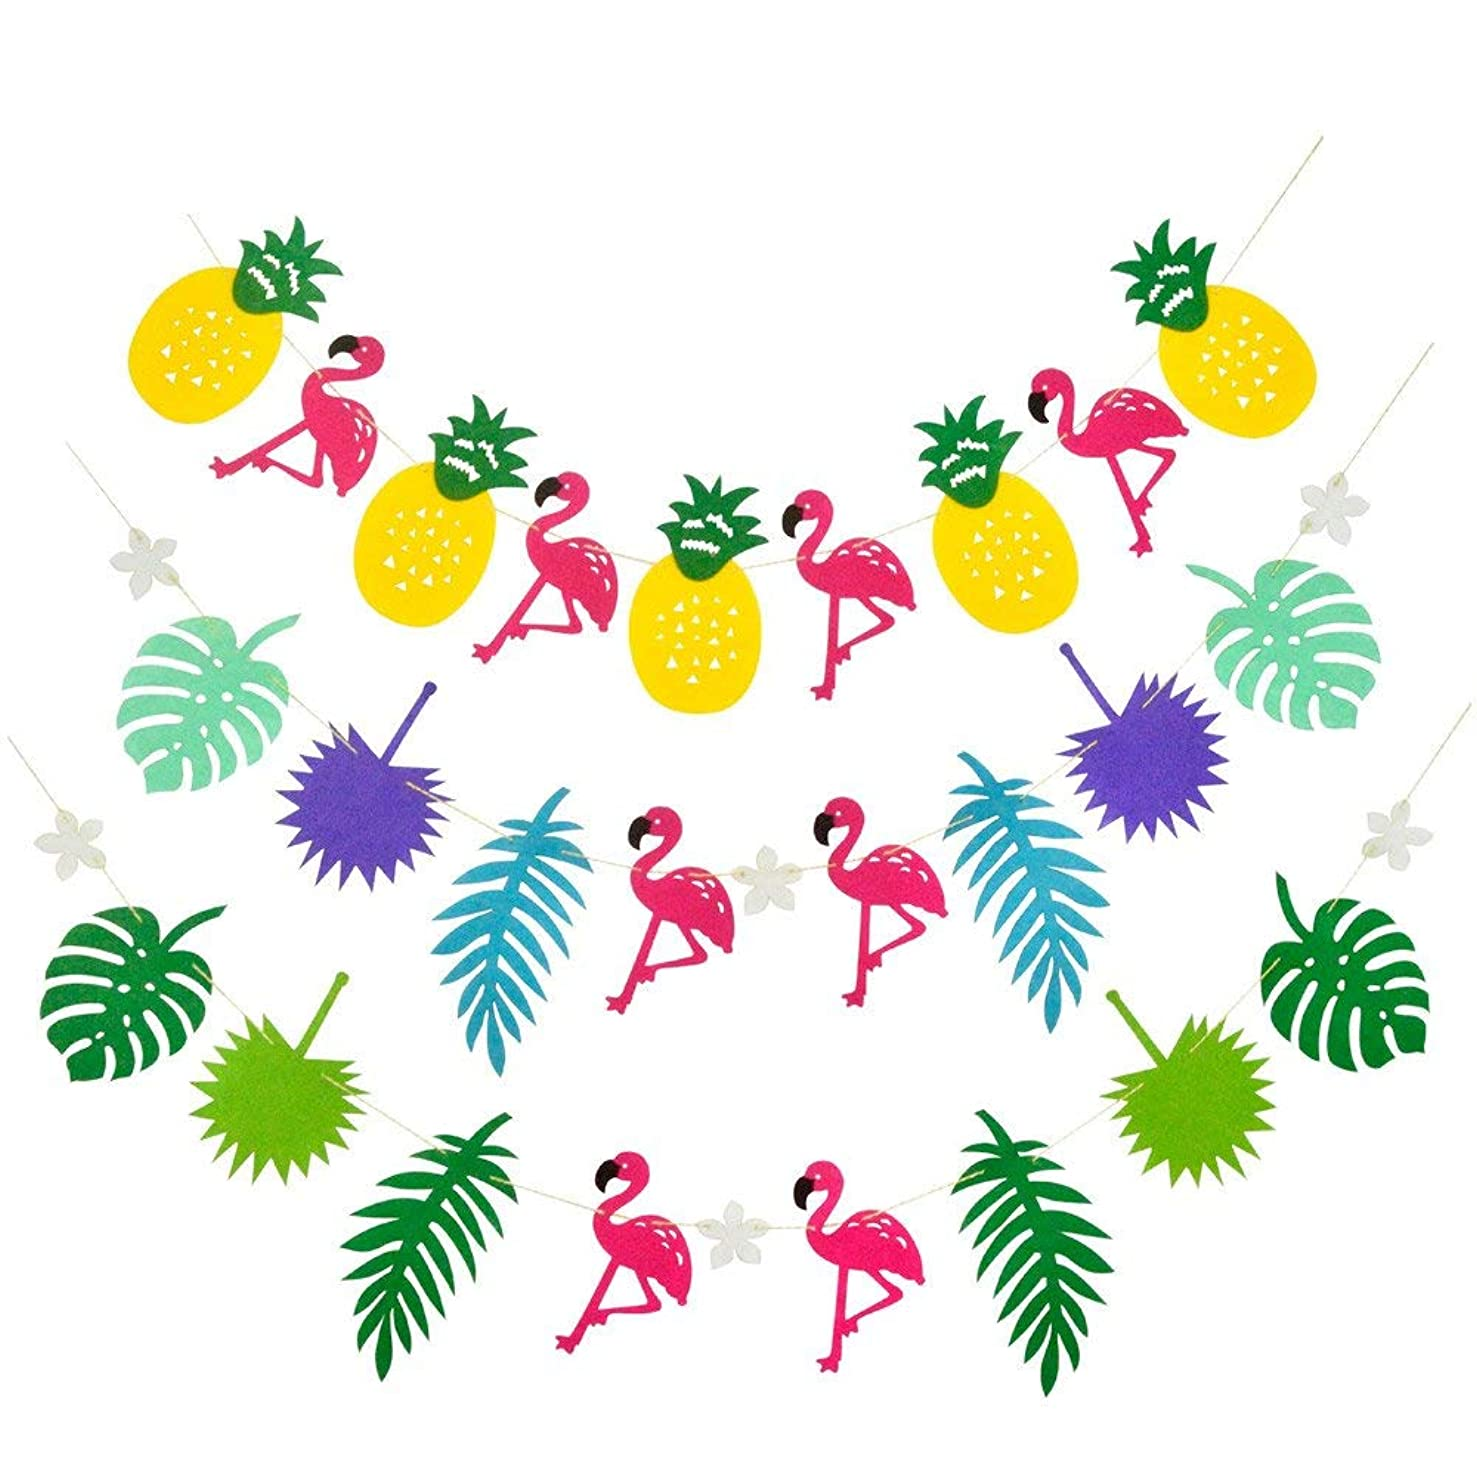 3 Packs, Size Apprpx.5.2 x 3.6 inches Fabric Tropical Rainforest Multicolored Pattern Pink Flamingo Pineapple Leaves Decorations Girls Room Birthday Wedding Club Salon Party String Banner Pennant